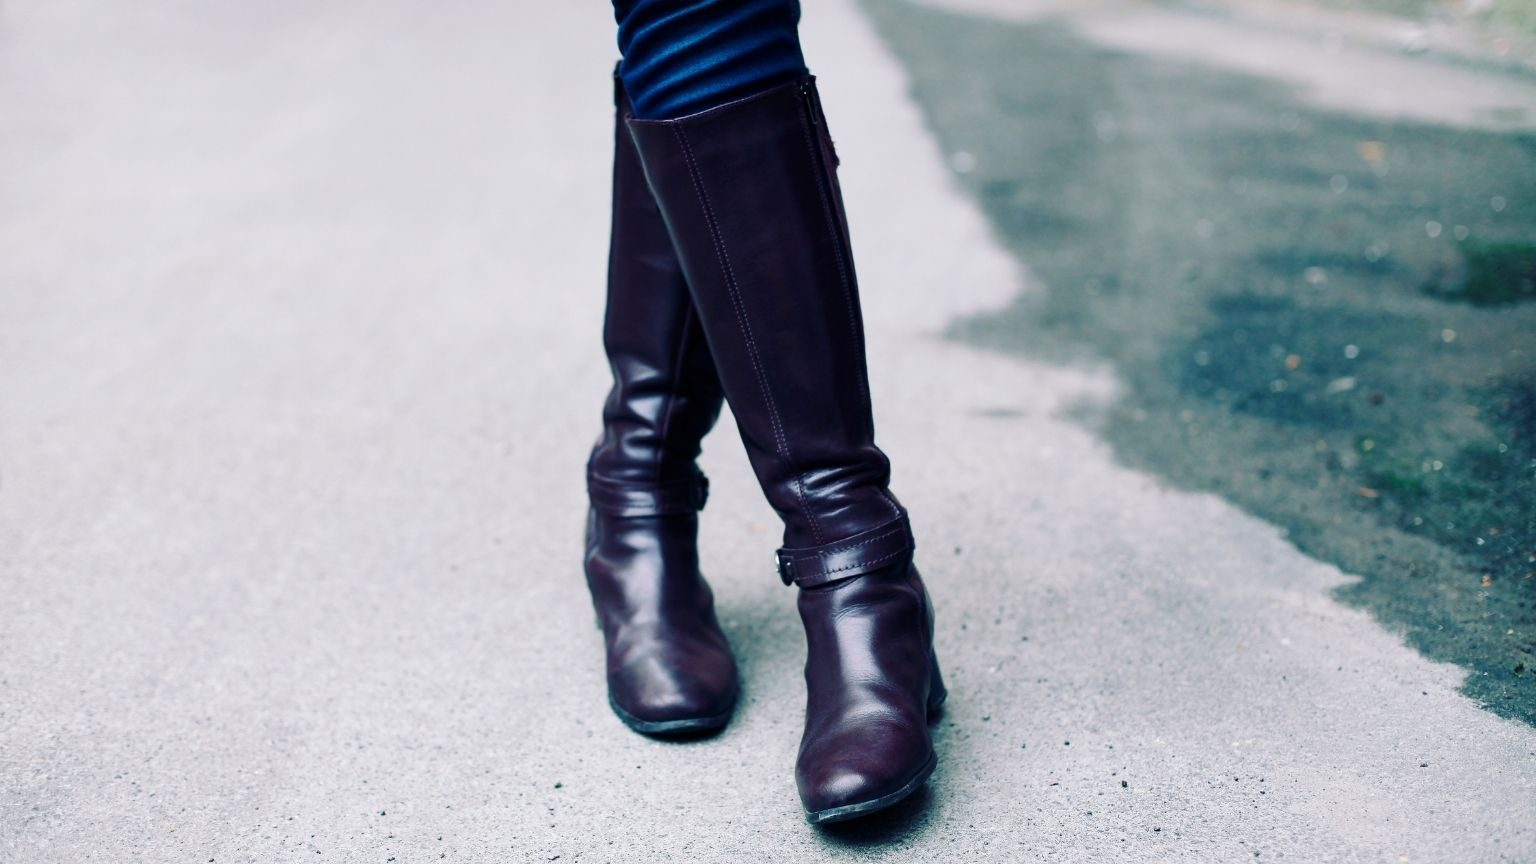 Woman wearing leather boots outside